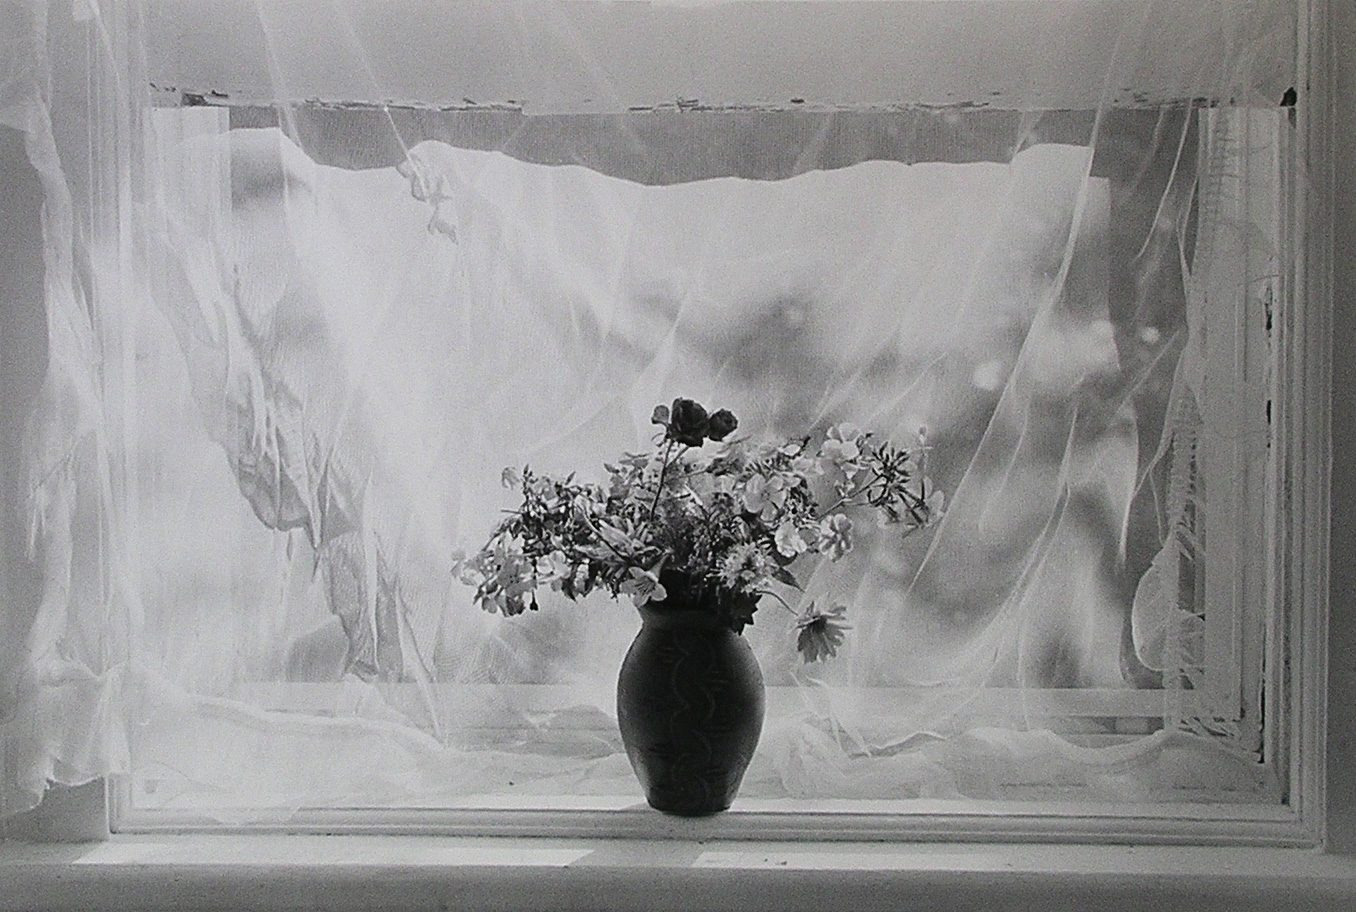 Flower and Curtain